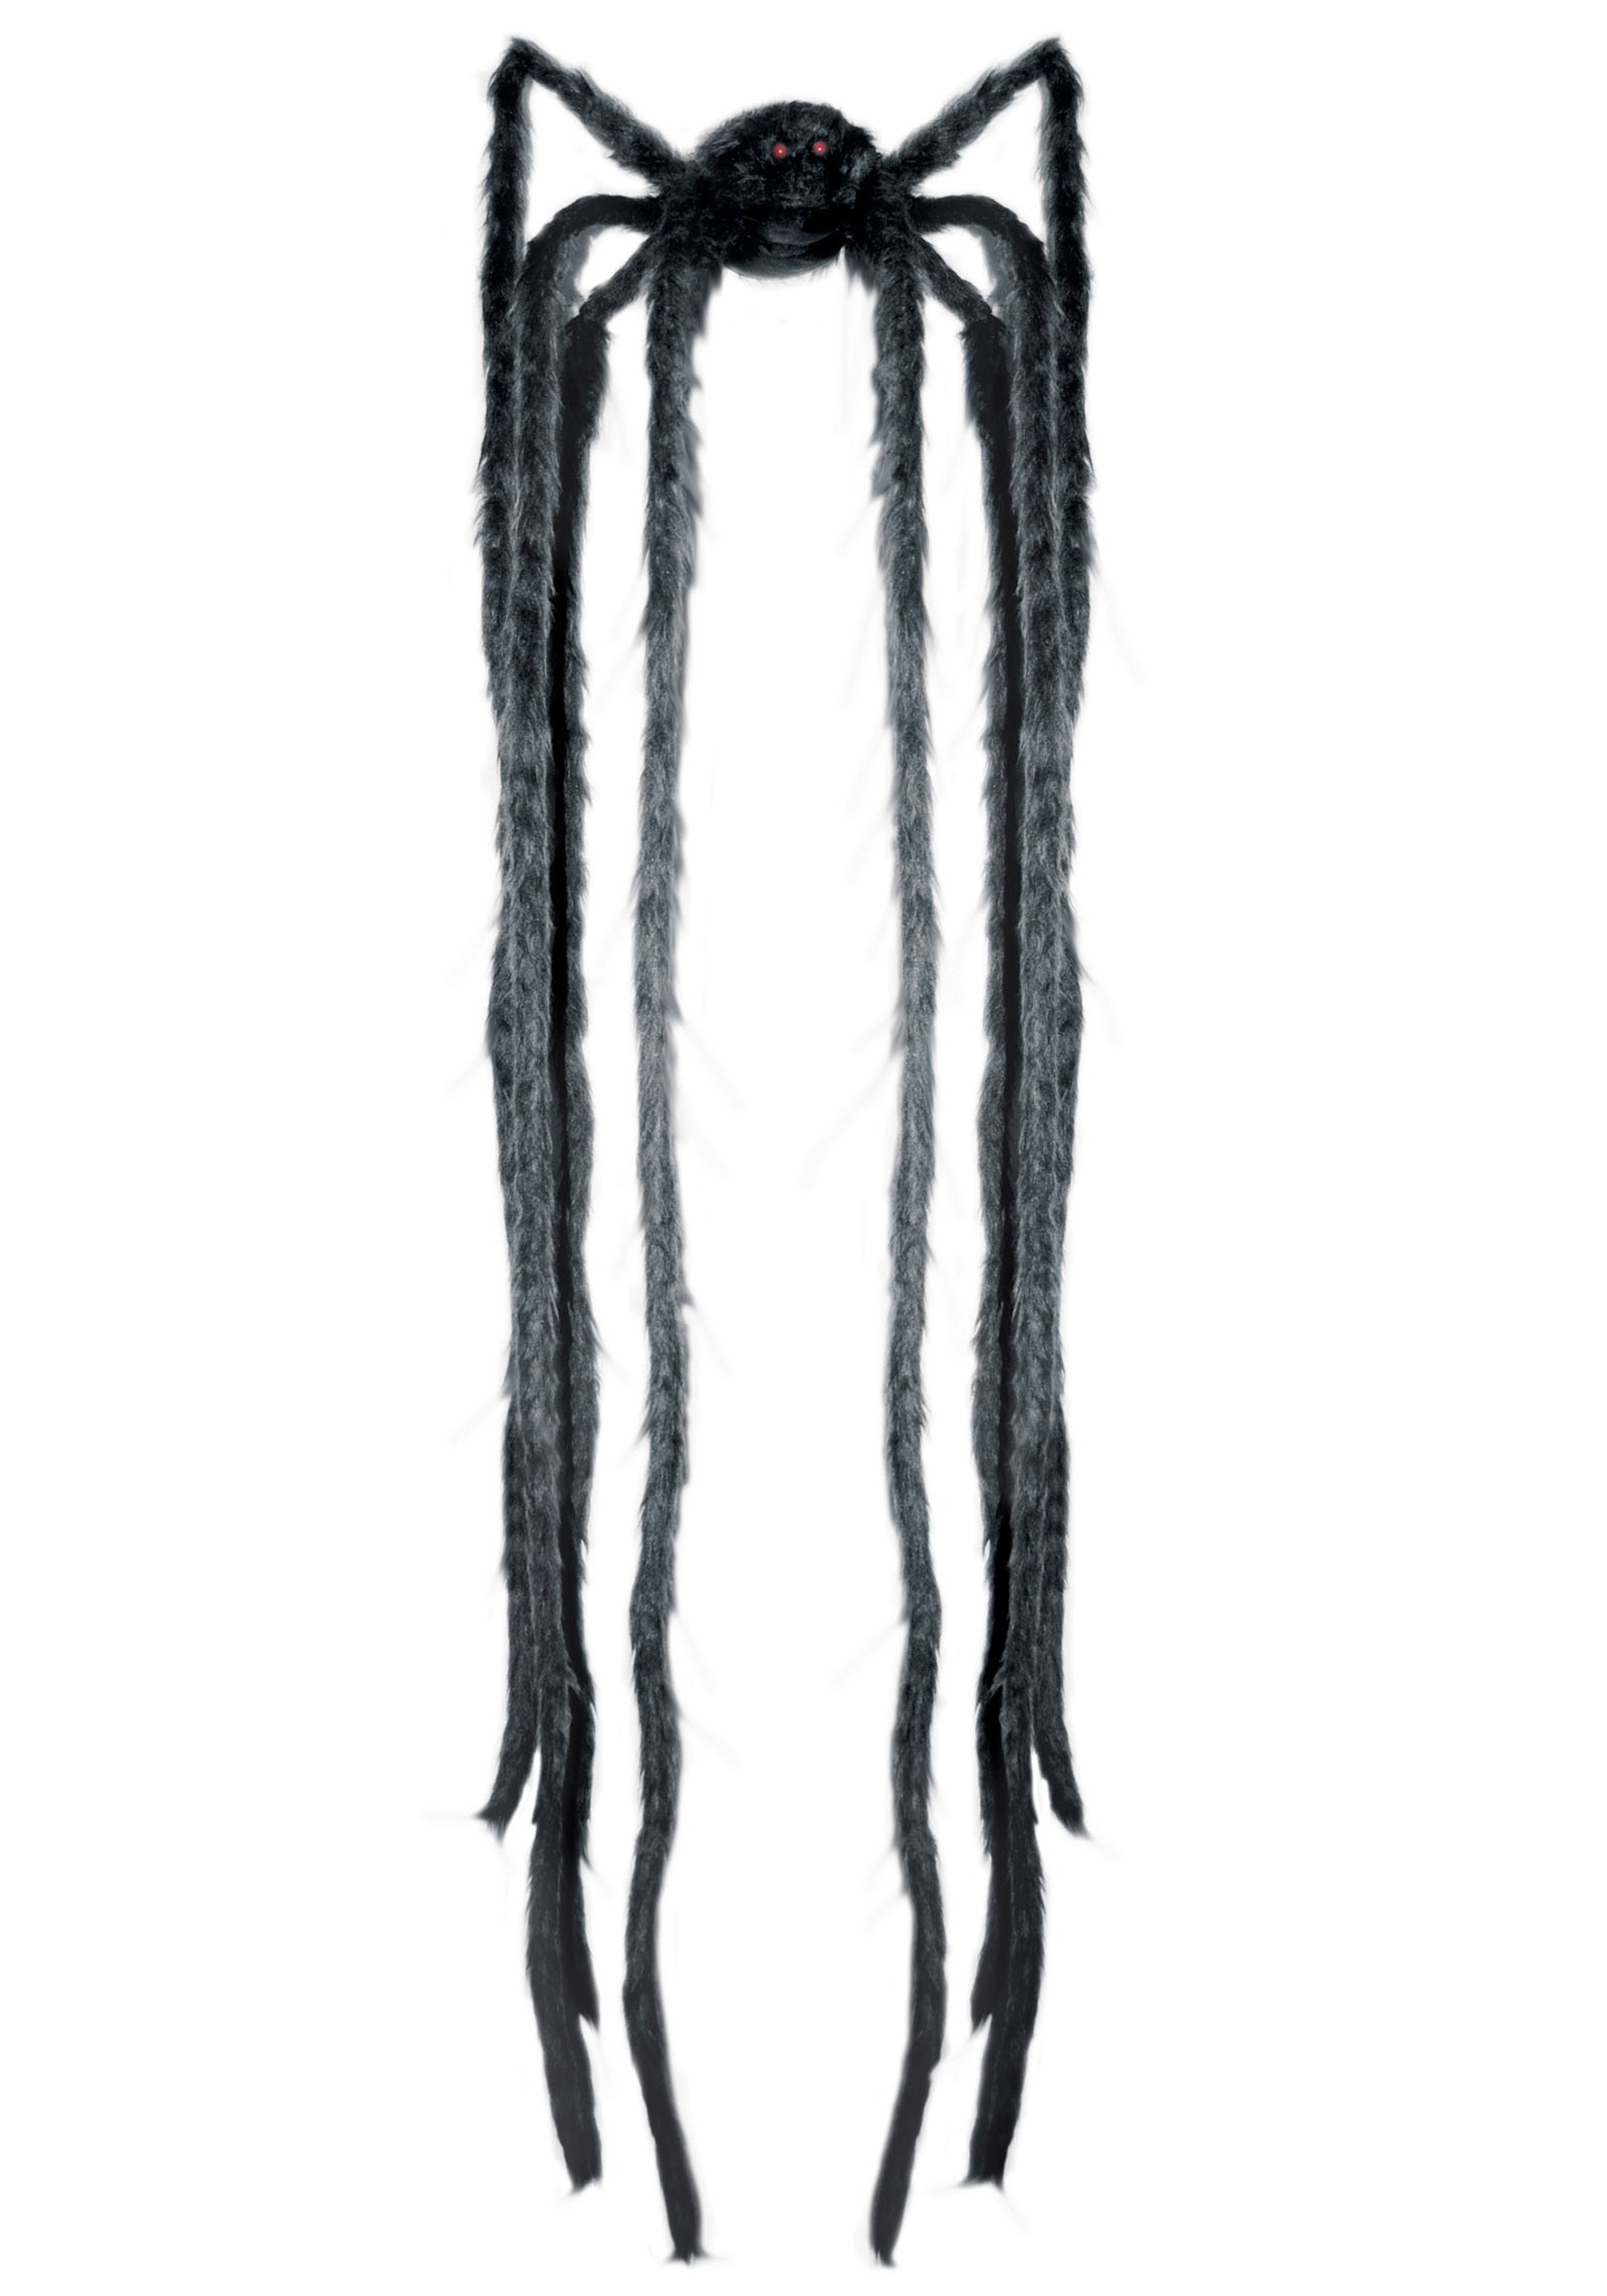 Legz clipart long leg Of Download Pictures Animated Art